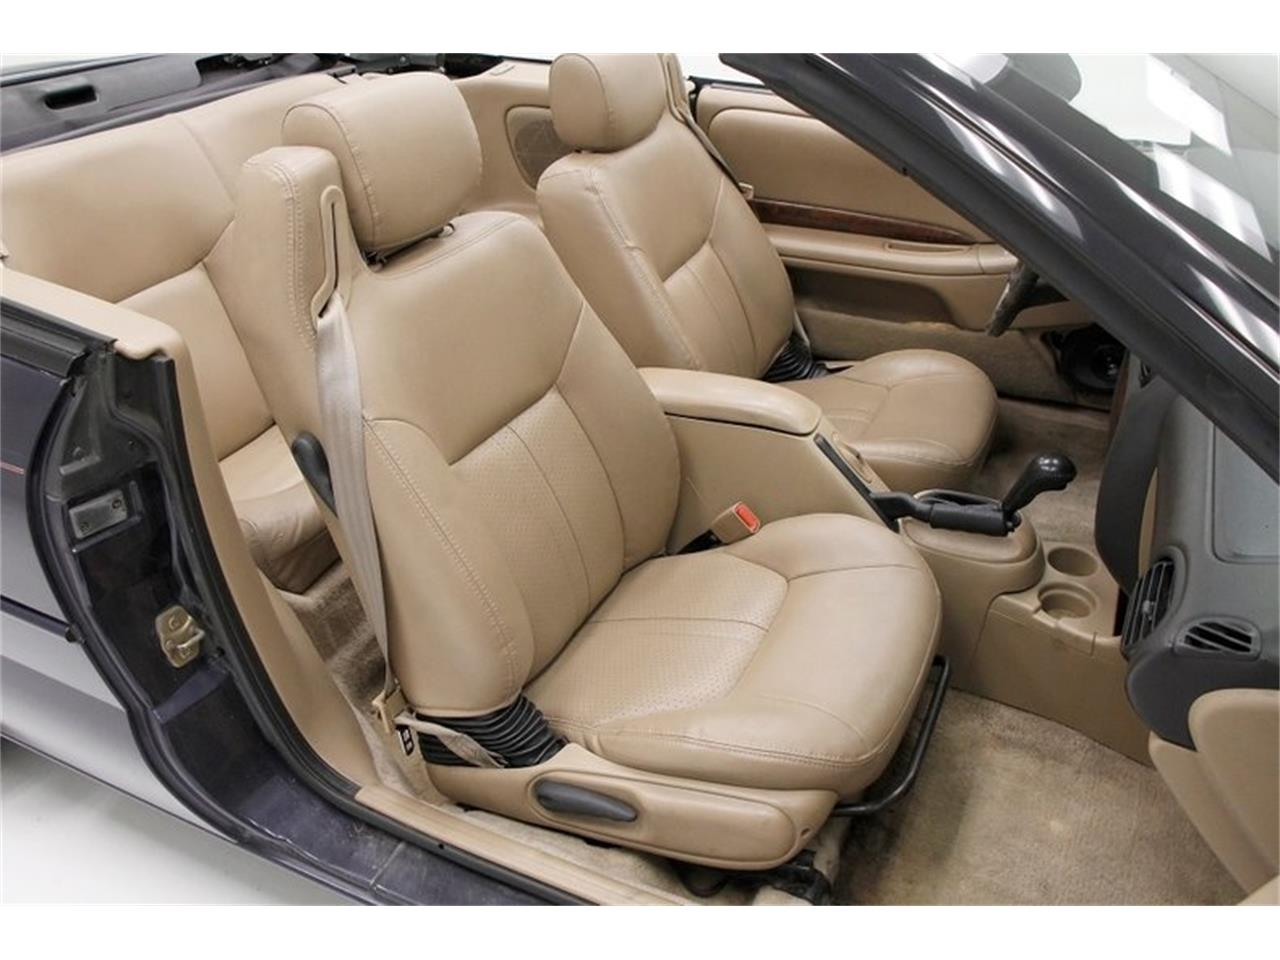 Large Picture of 1997 Chrysler Sebring located in Pennsylvania - $7,995.00 - LVUB